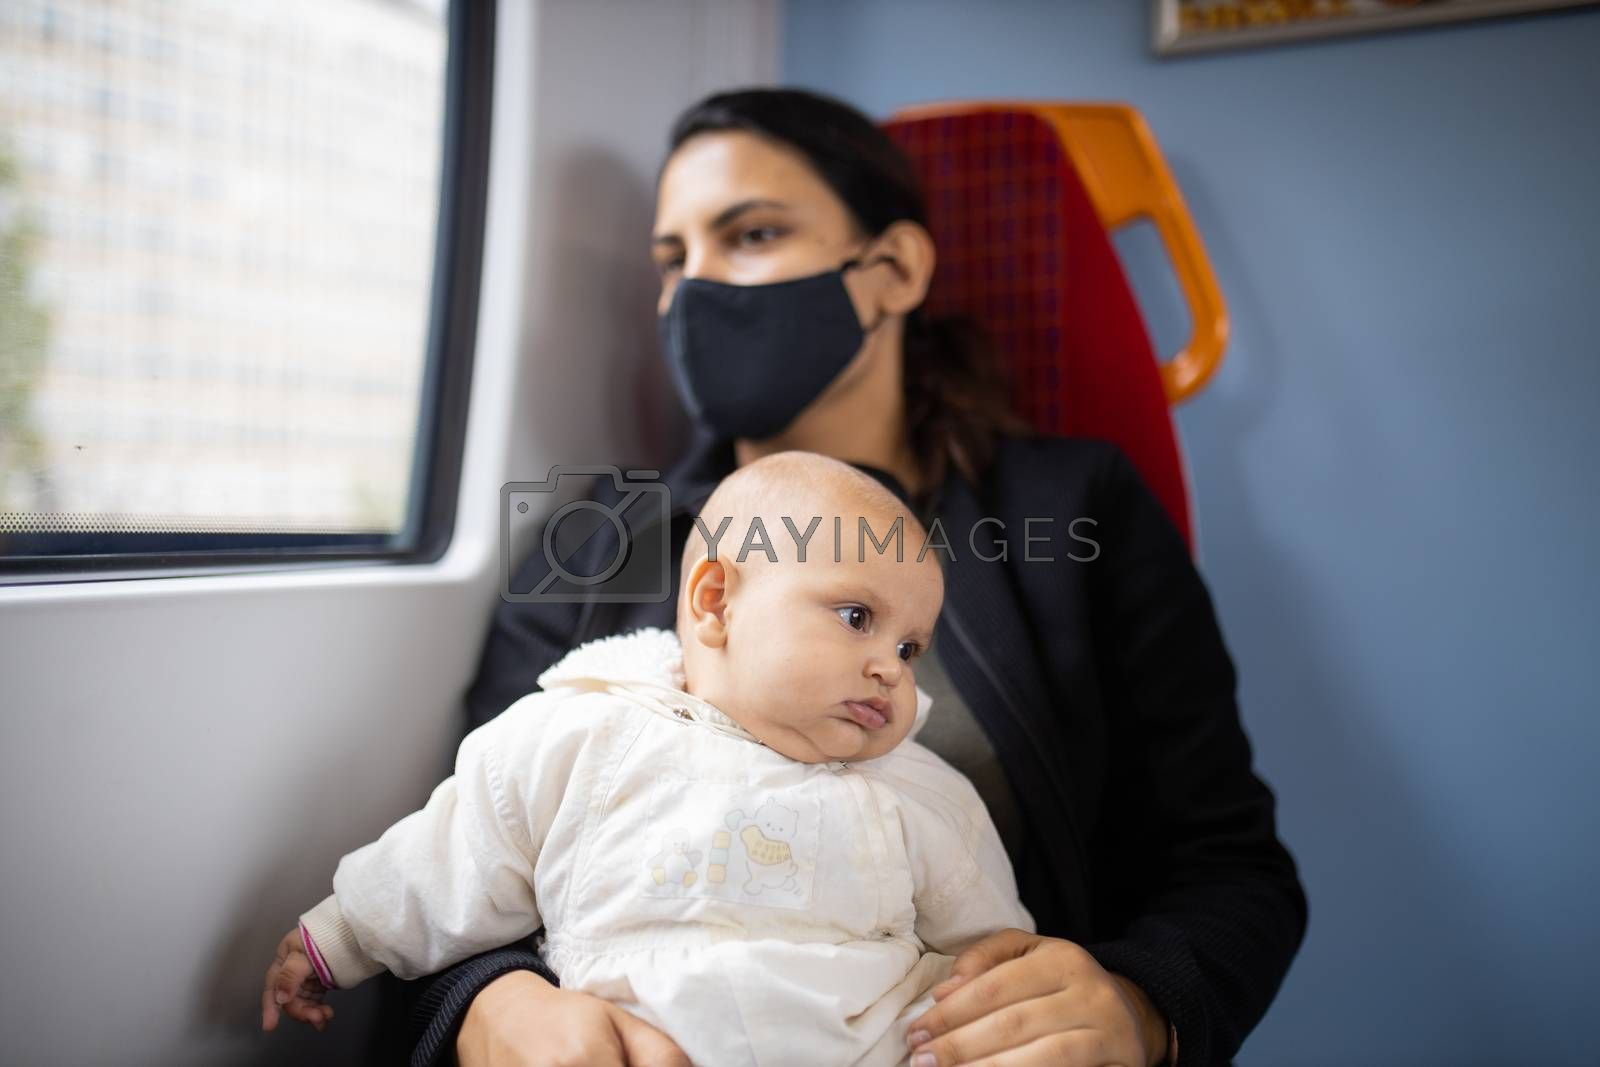 Woman wearing a black face mask sitting next to a window on a train and holding her baby who looks absently